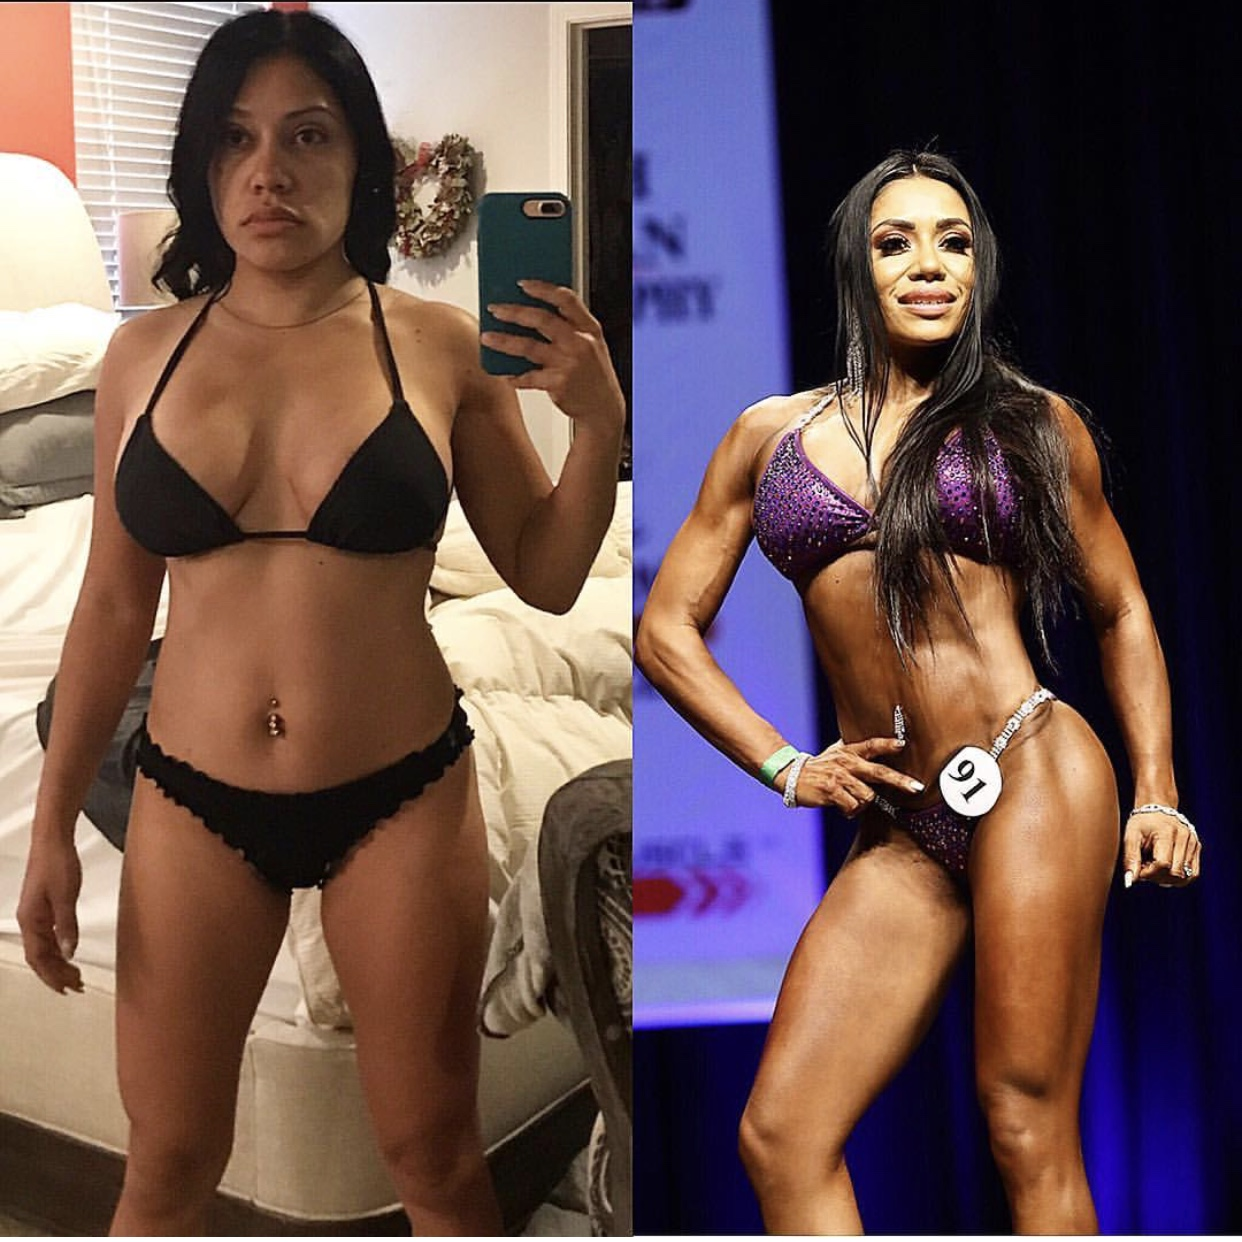 Sara Bent   All my client inspire me with their focus and intent to really transform. . The one and first client that really inspired me to transform and compete myself is Sara Bent, my first bikini competitor. Sara came to me in November, 16 weeks prior to her first competition. Her only focus was to train her legs to get bigger and more defined (which is my speciality). We trained consistently three times a week on legs for those weeks prior to her show. She absolutely looked amazing, her focus and work ethic was nothing that I had seen from anyone.  ____________  YOU my lady, have truly been a HUGE part of MY journey!!!. I don't think I could've grown as much physically and mentally without your amazing personal training and push I needed! I'm forever grateful for helping me throughout my journey!!!! Now that you got me started I gave you in my head to Always keep pushing !!!!